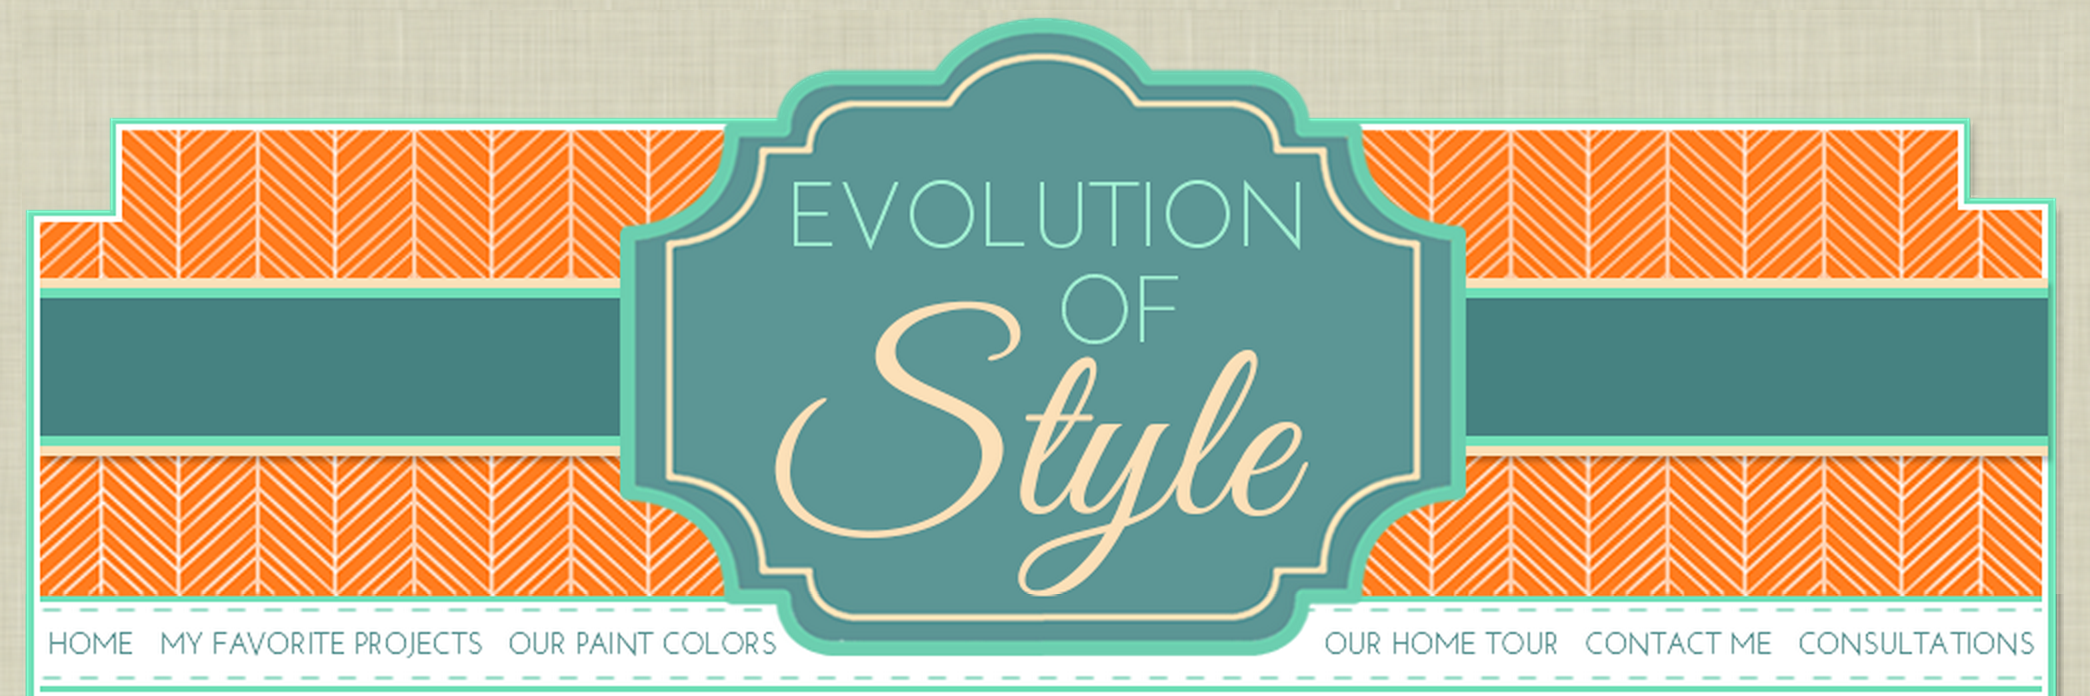 Evolution of Style Guest Post!